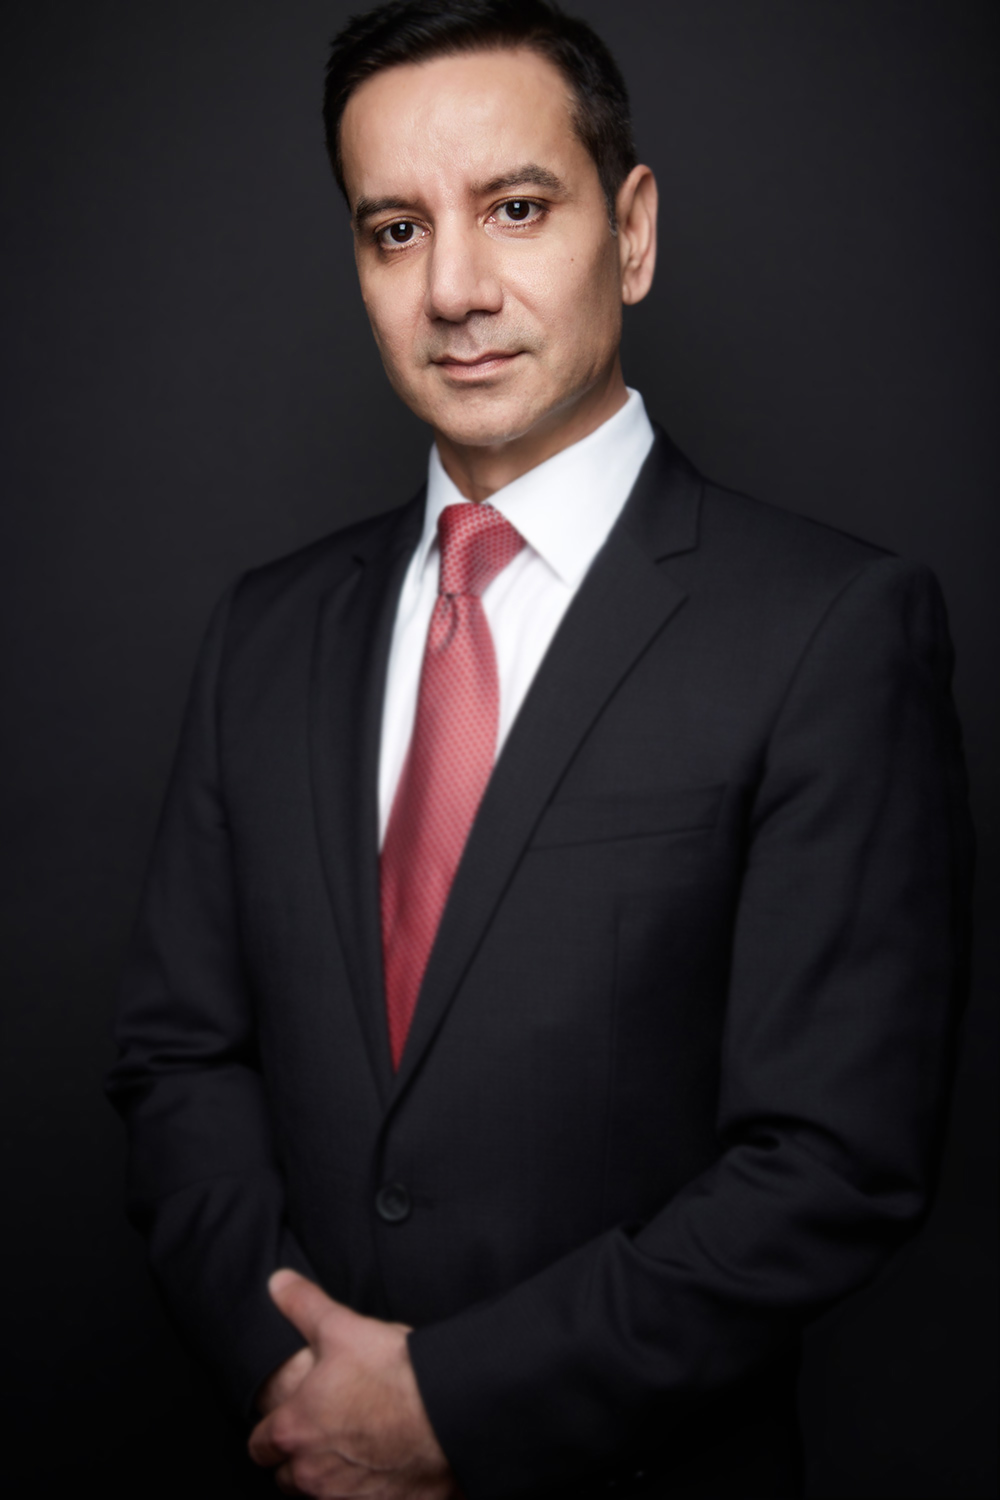 Ryan_Chicago_Corporate_Portrait_Photographer_Business_Head_Shot_Photography_Tiny_Space_Studio_Chicago